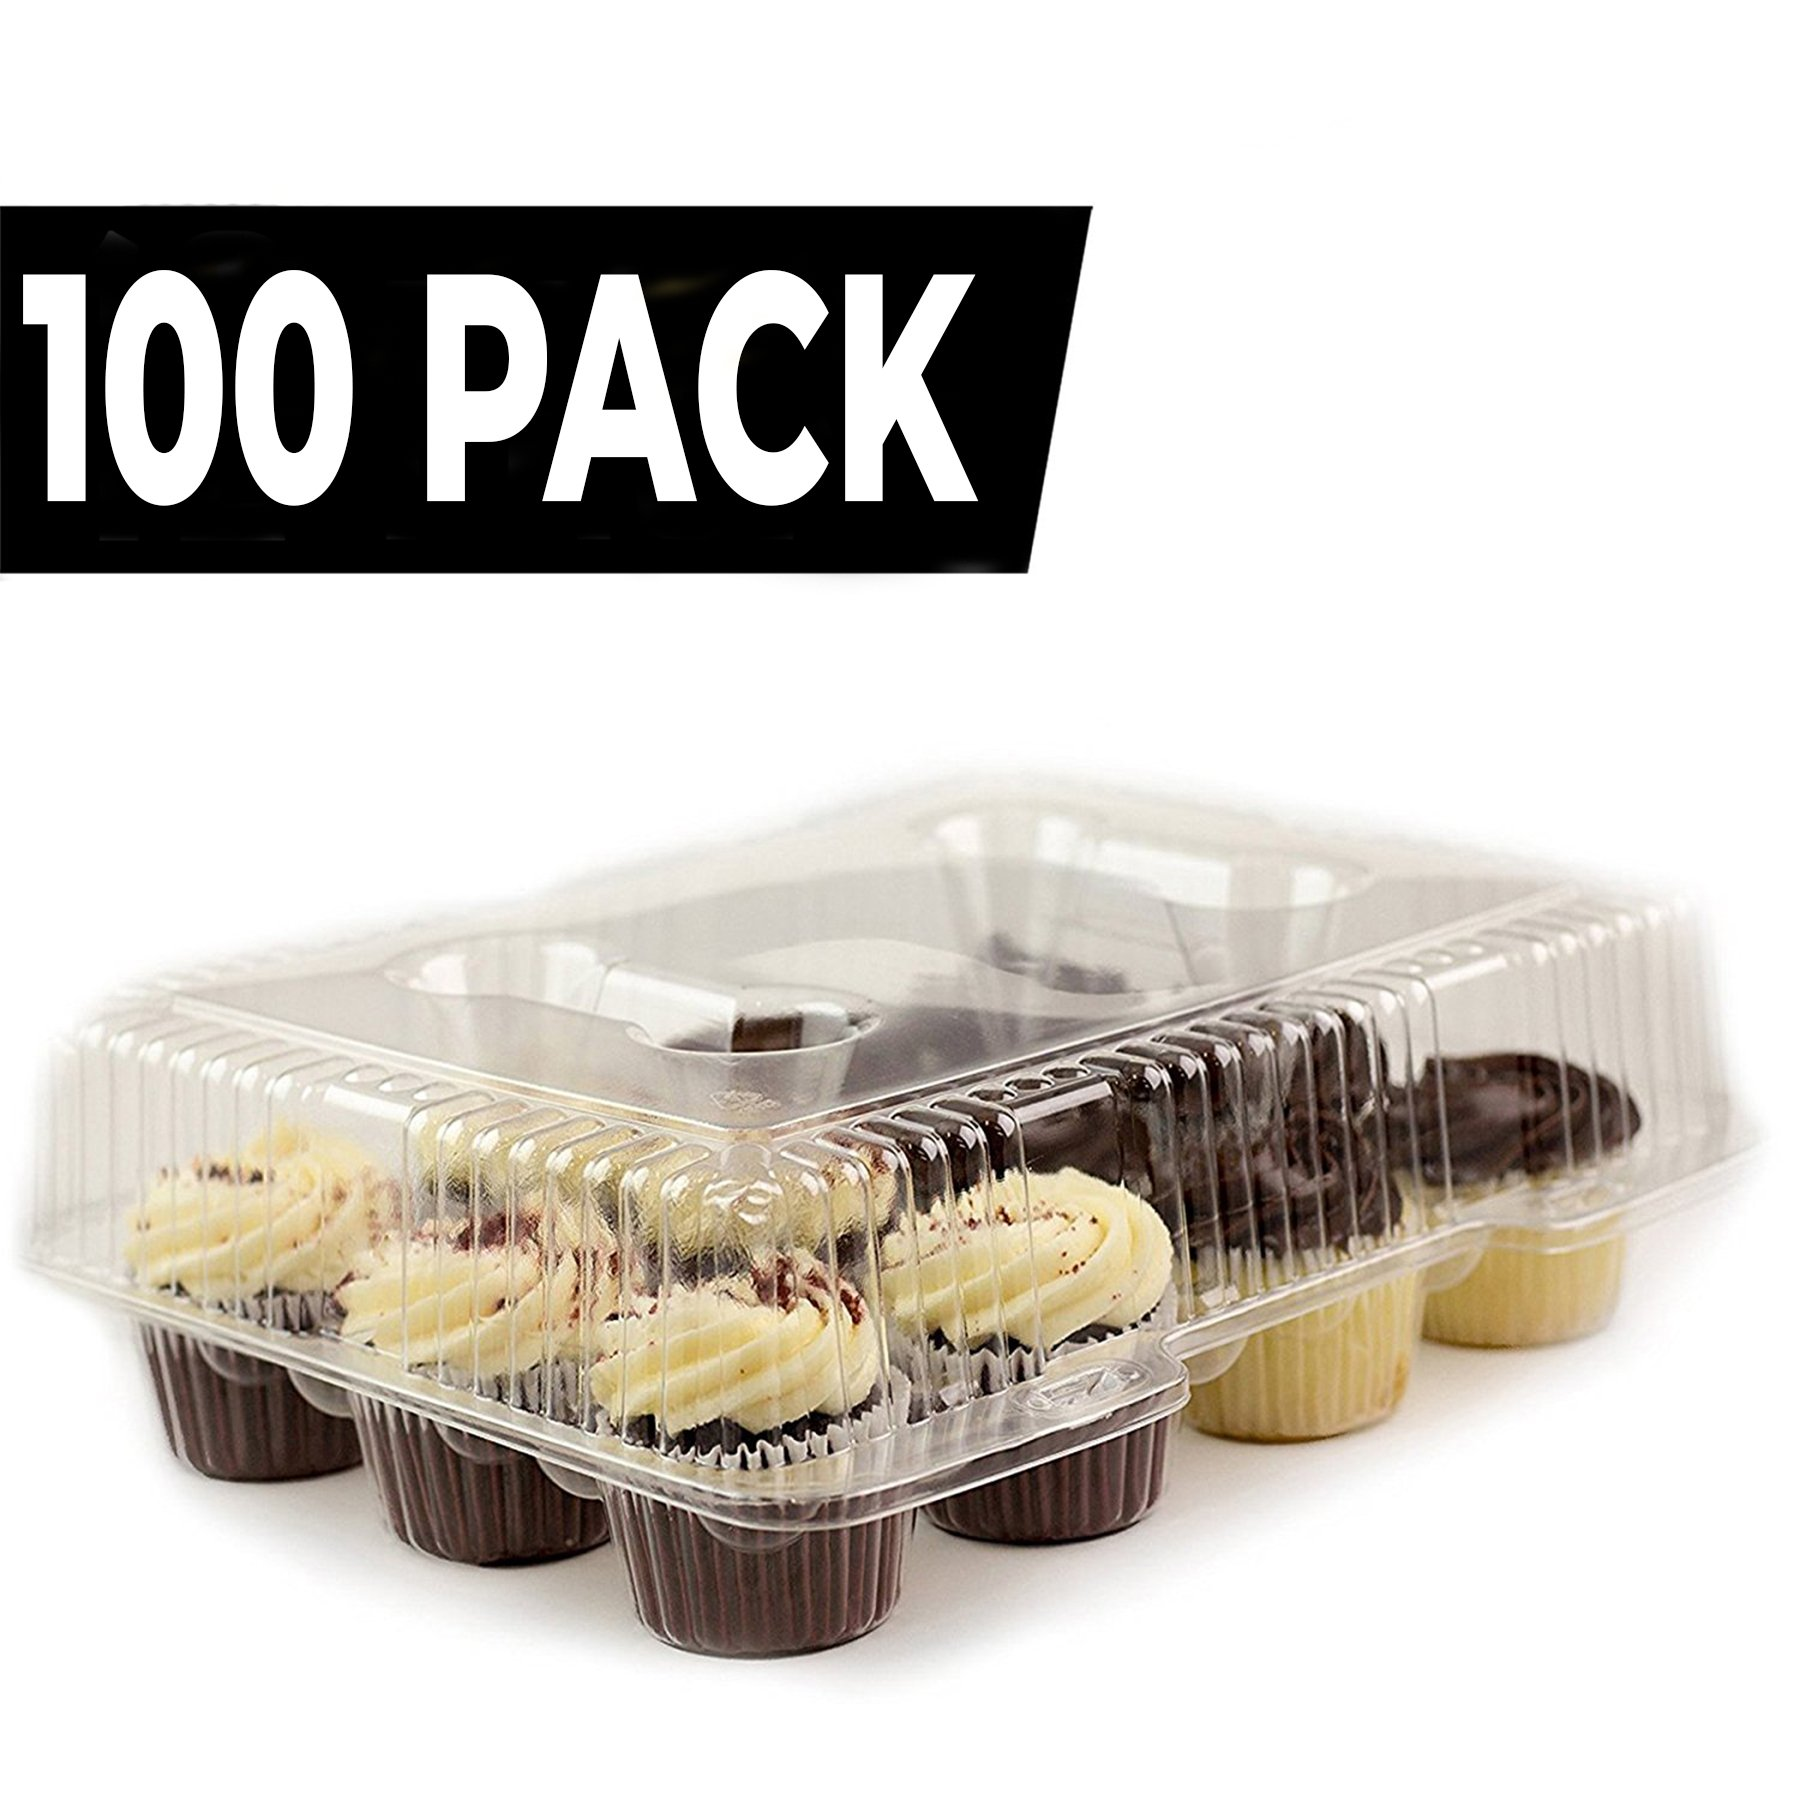 Chefible 12 Cupcake Container, Takeout Container, Cupcake Carrier, 10 Pack (100)